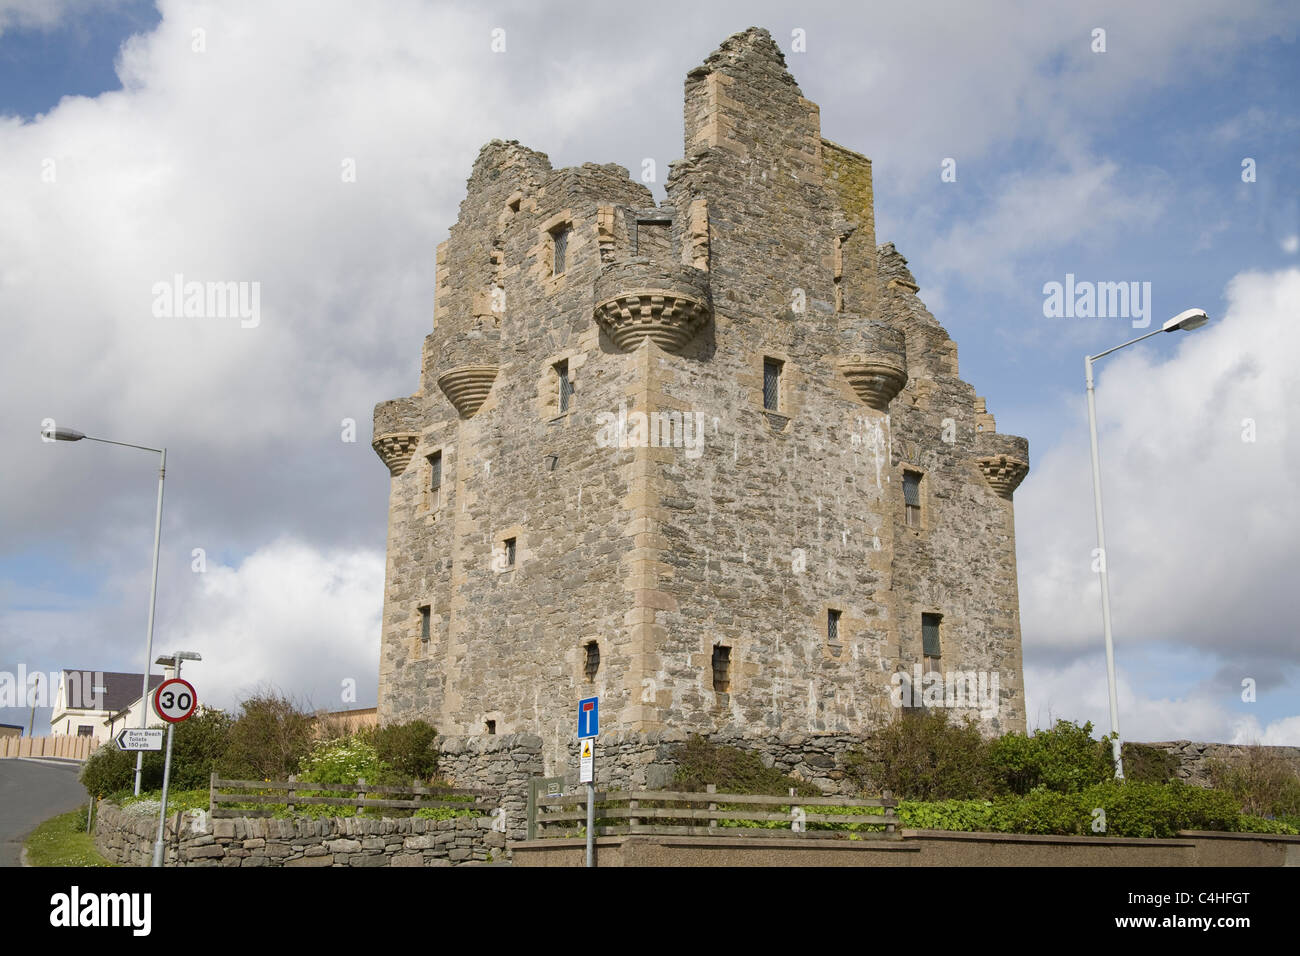 Shetland isles Scotland May Ruins of Scalloway Castle started in 1599 by Patrick Stewart 2nd Earl of Orkney a tower - Stock Image